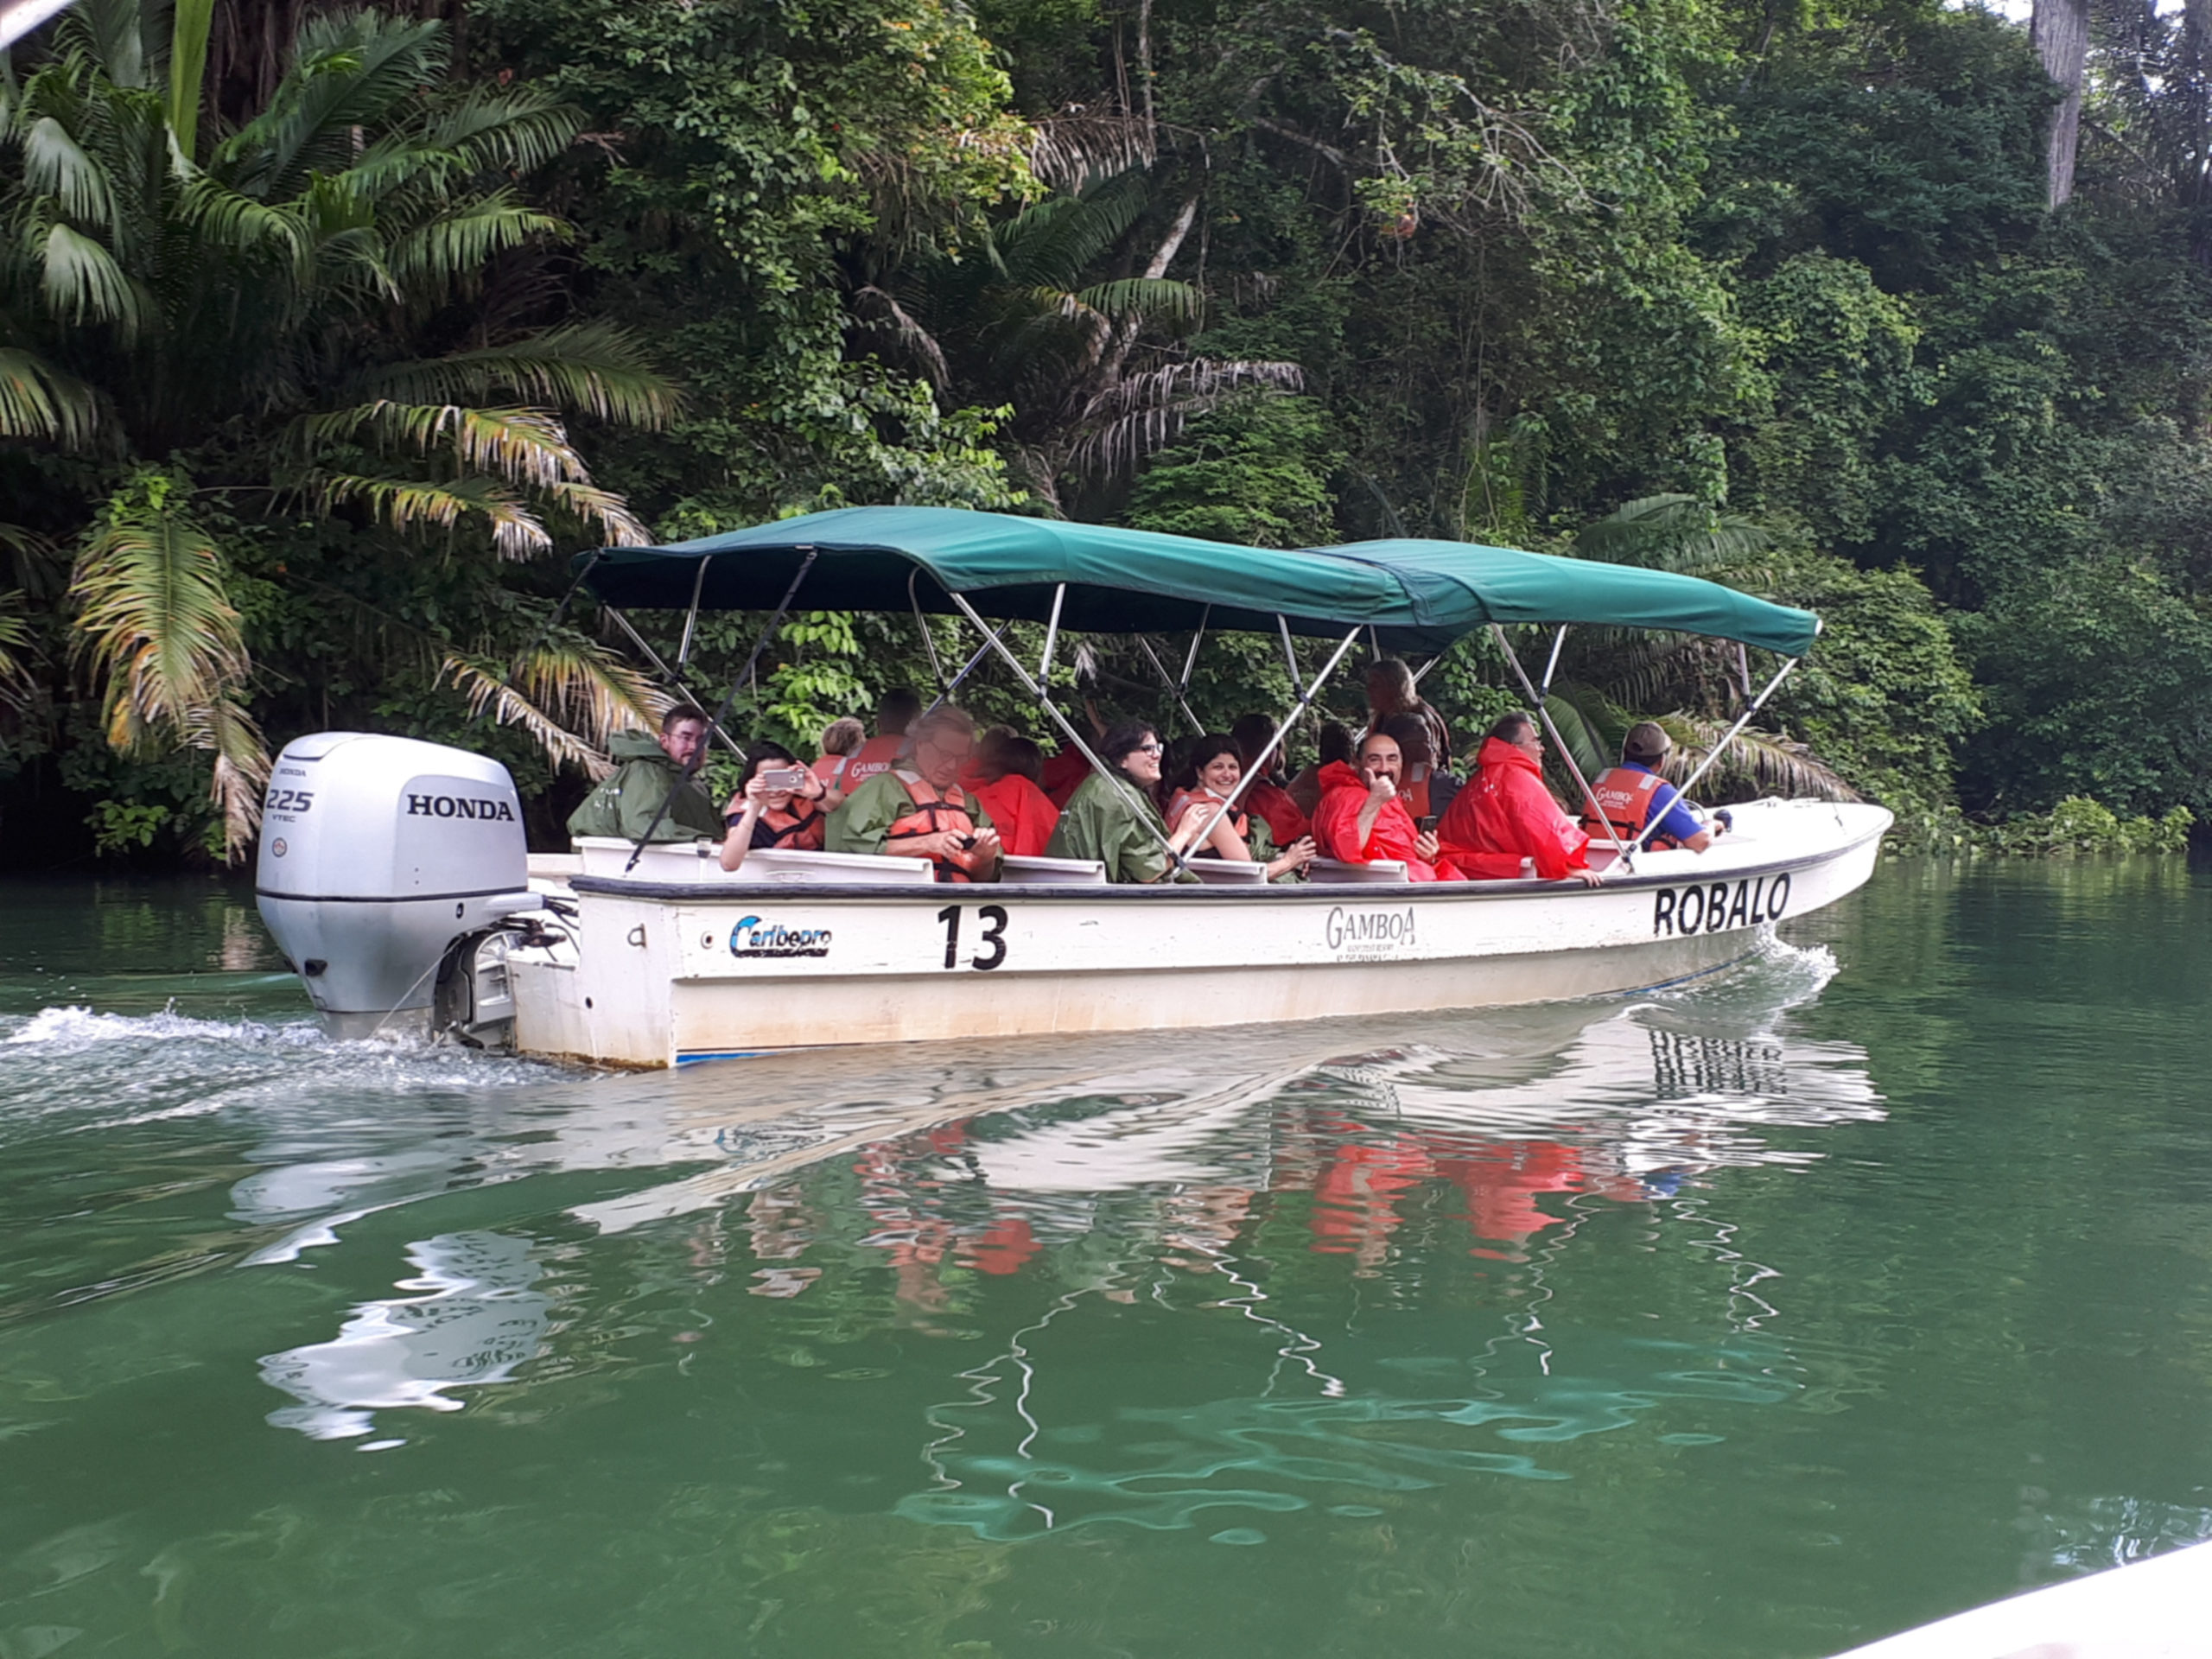 Boat trip on the Canal of Panama, Gamboa Park - 2018